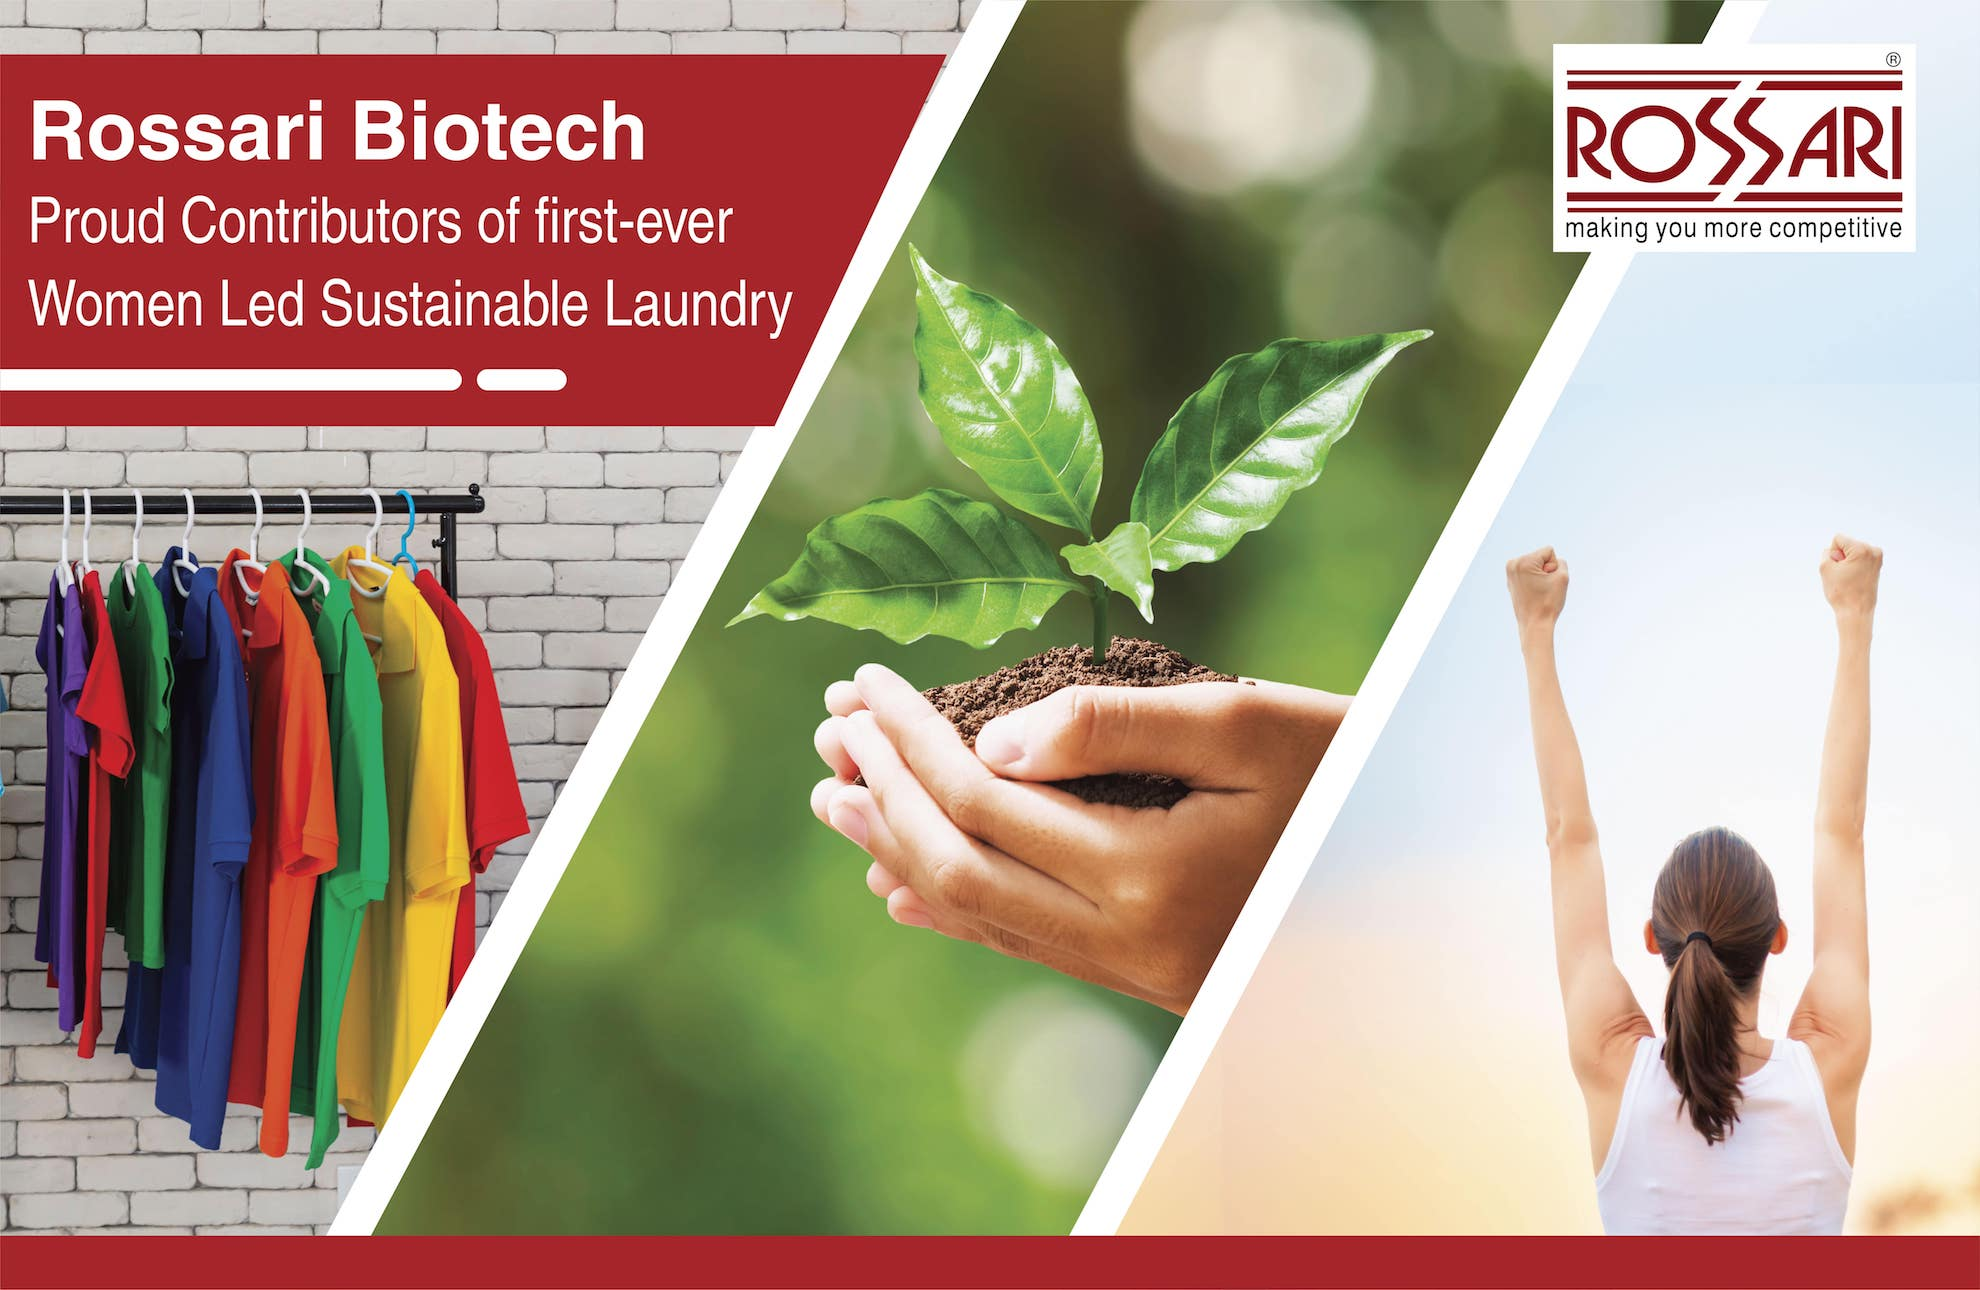 Rossari Biotech: Proud Contributors of first-ever Women Led Sustainable Laundry